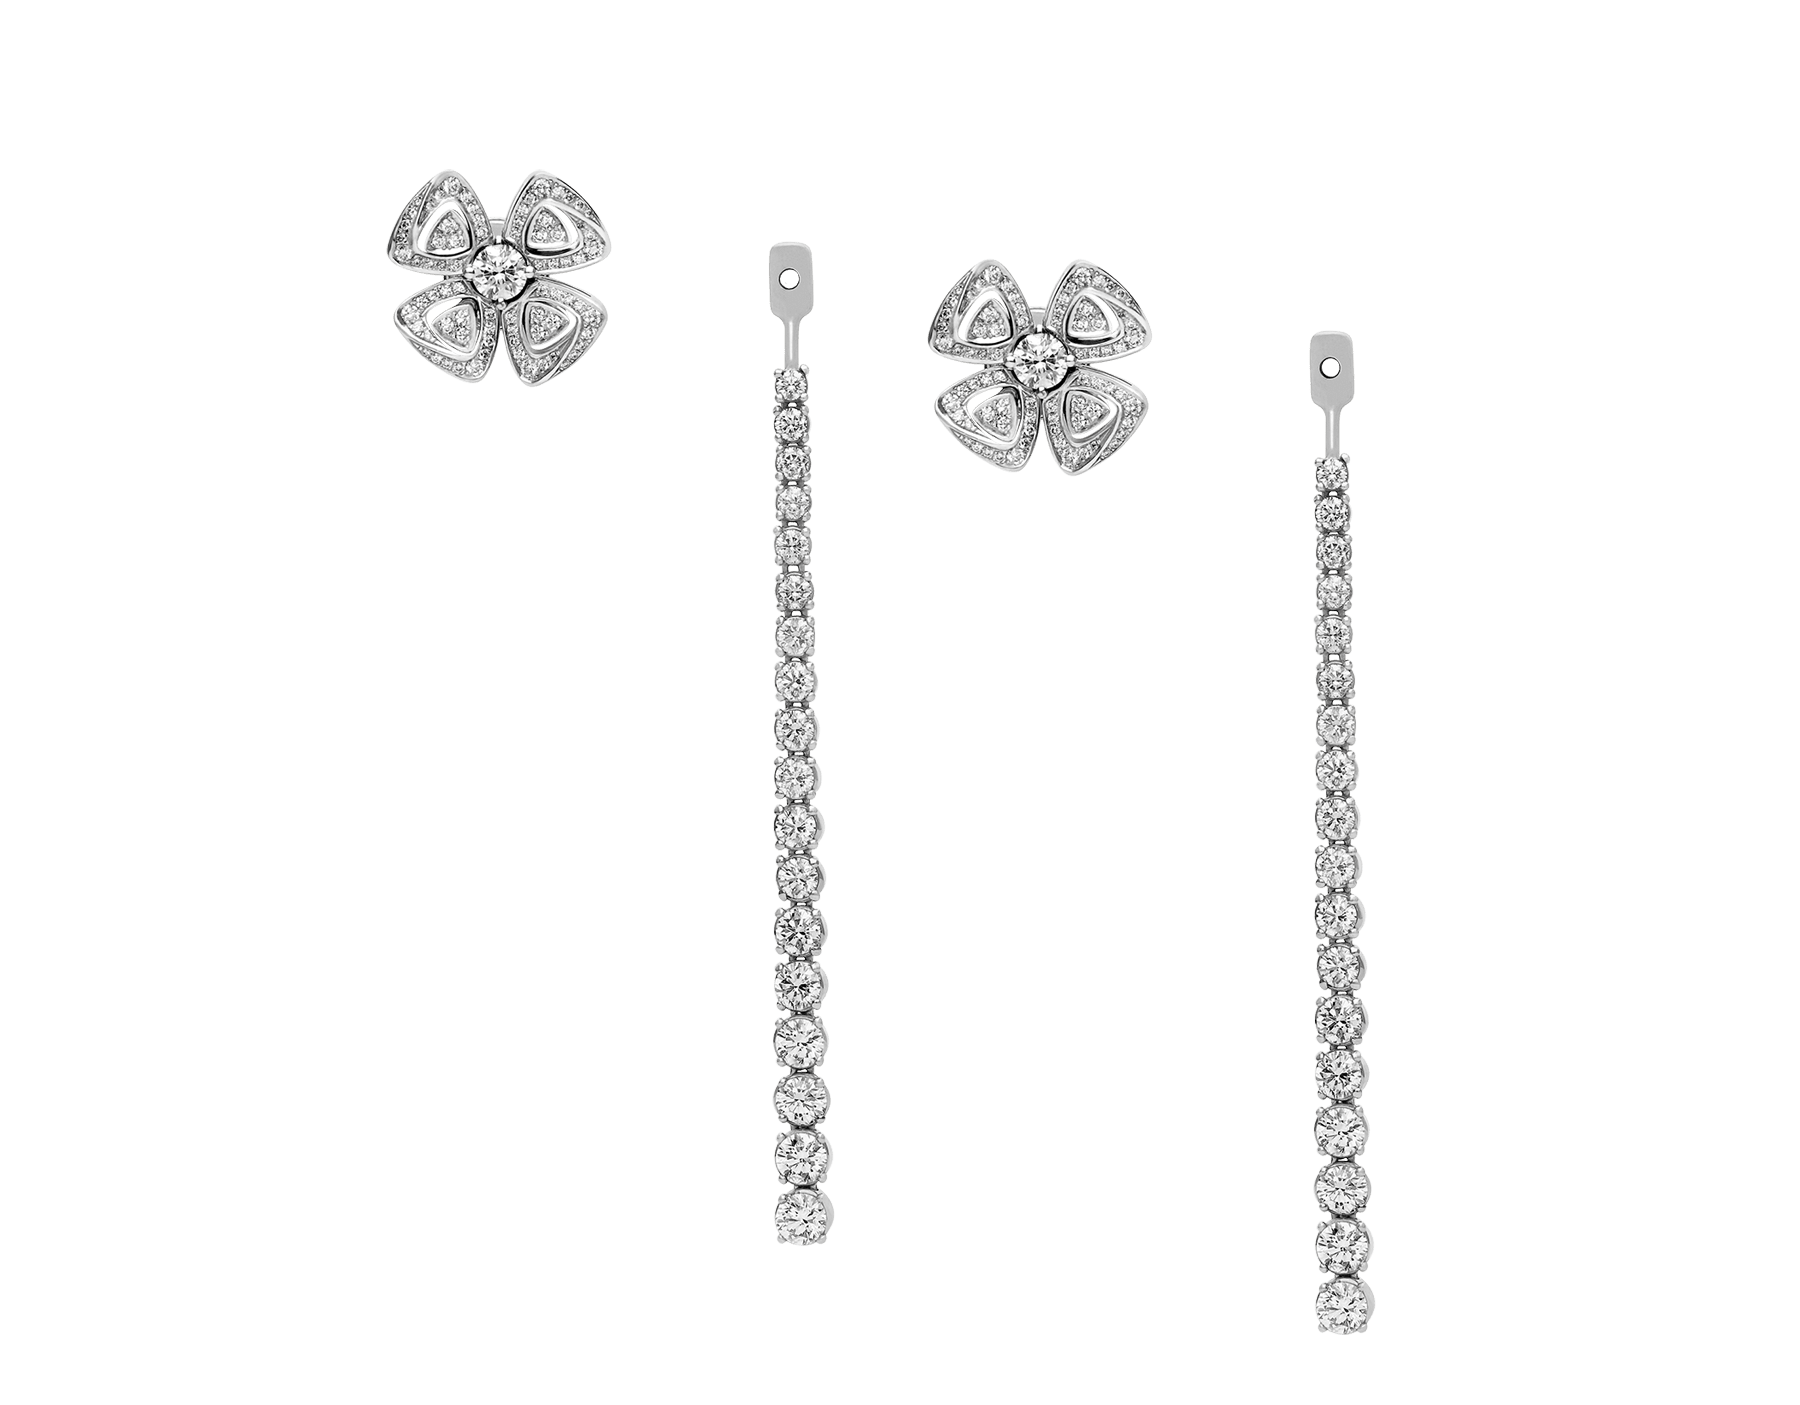 Fiorever 18 kt white gold convertible earrings set with brilliant-cut diamonds (2.81 ct) and pavé diamonds (0.26 ct) 358158 image 1